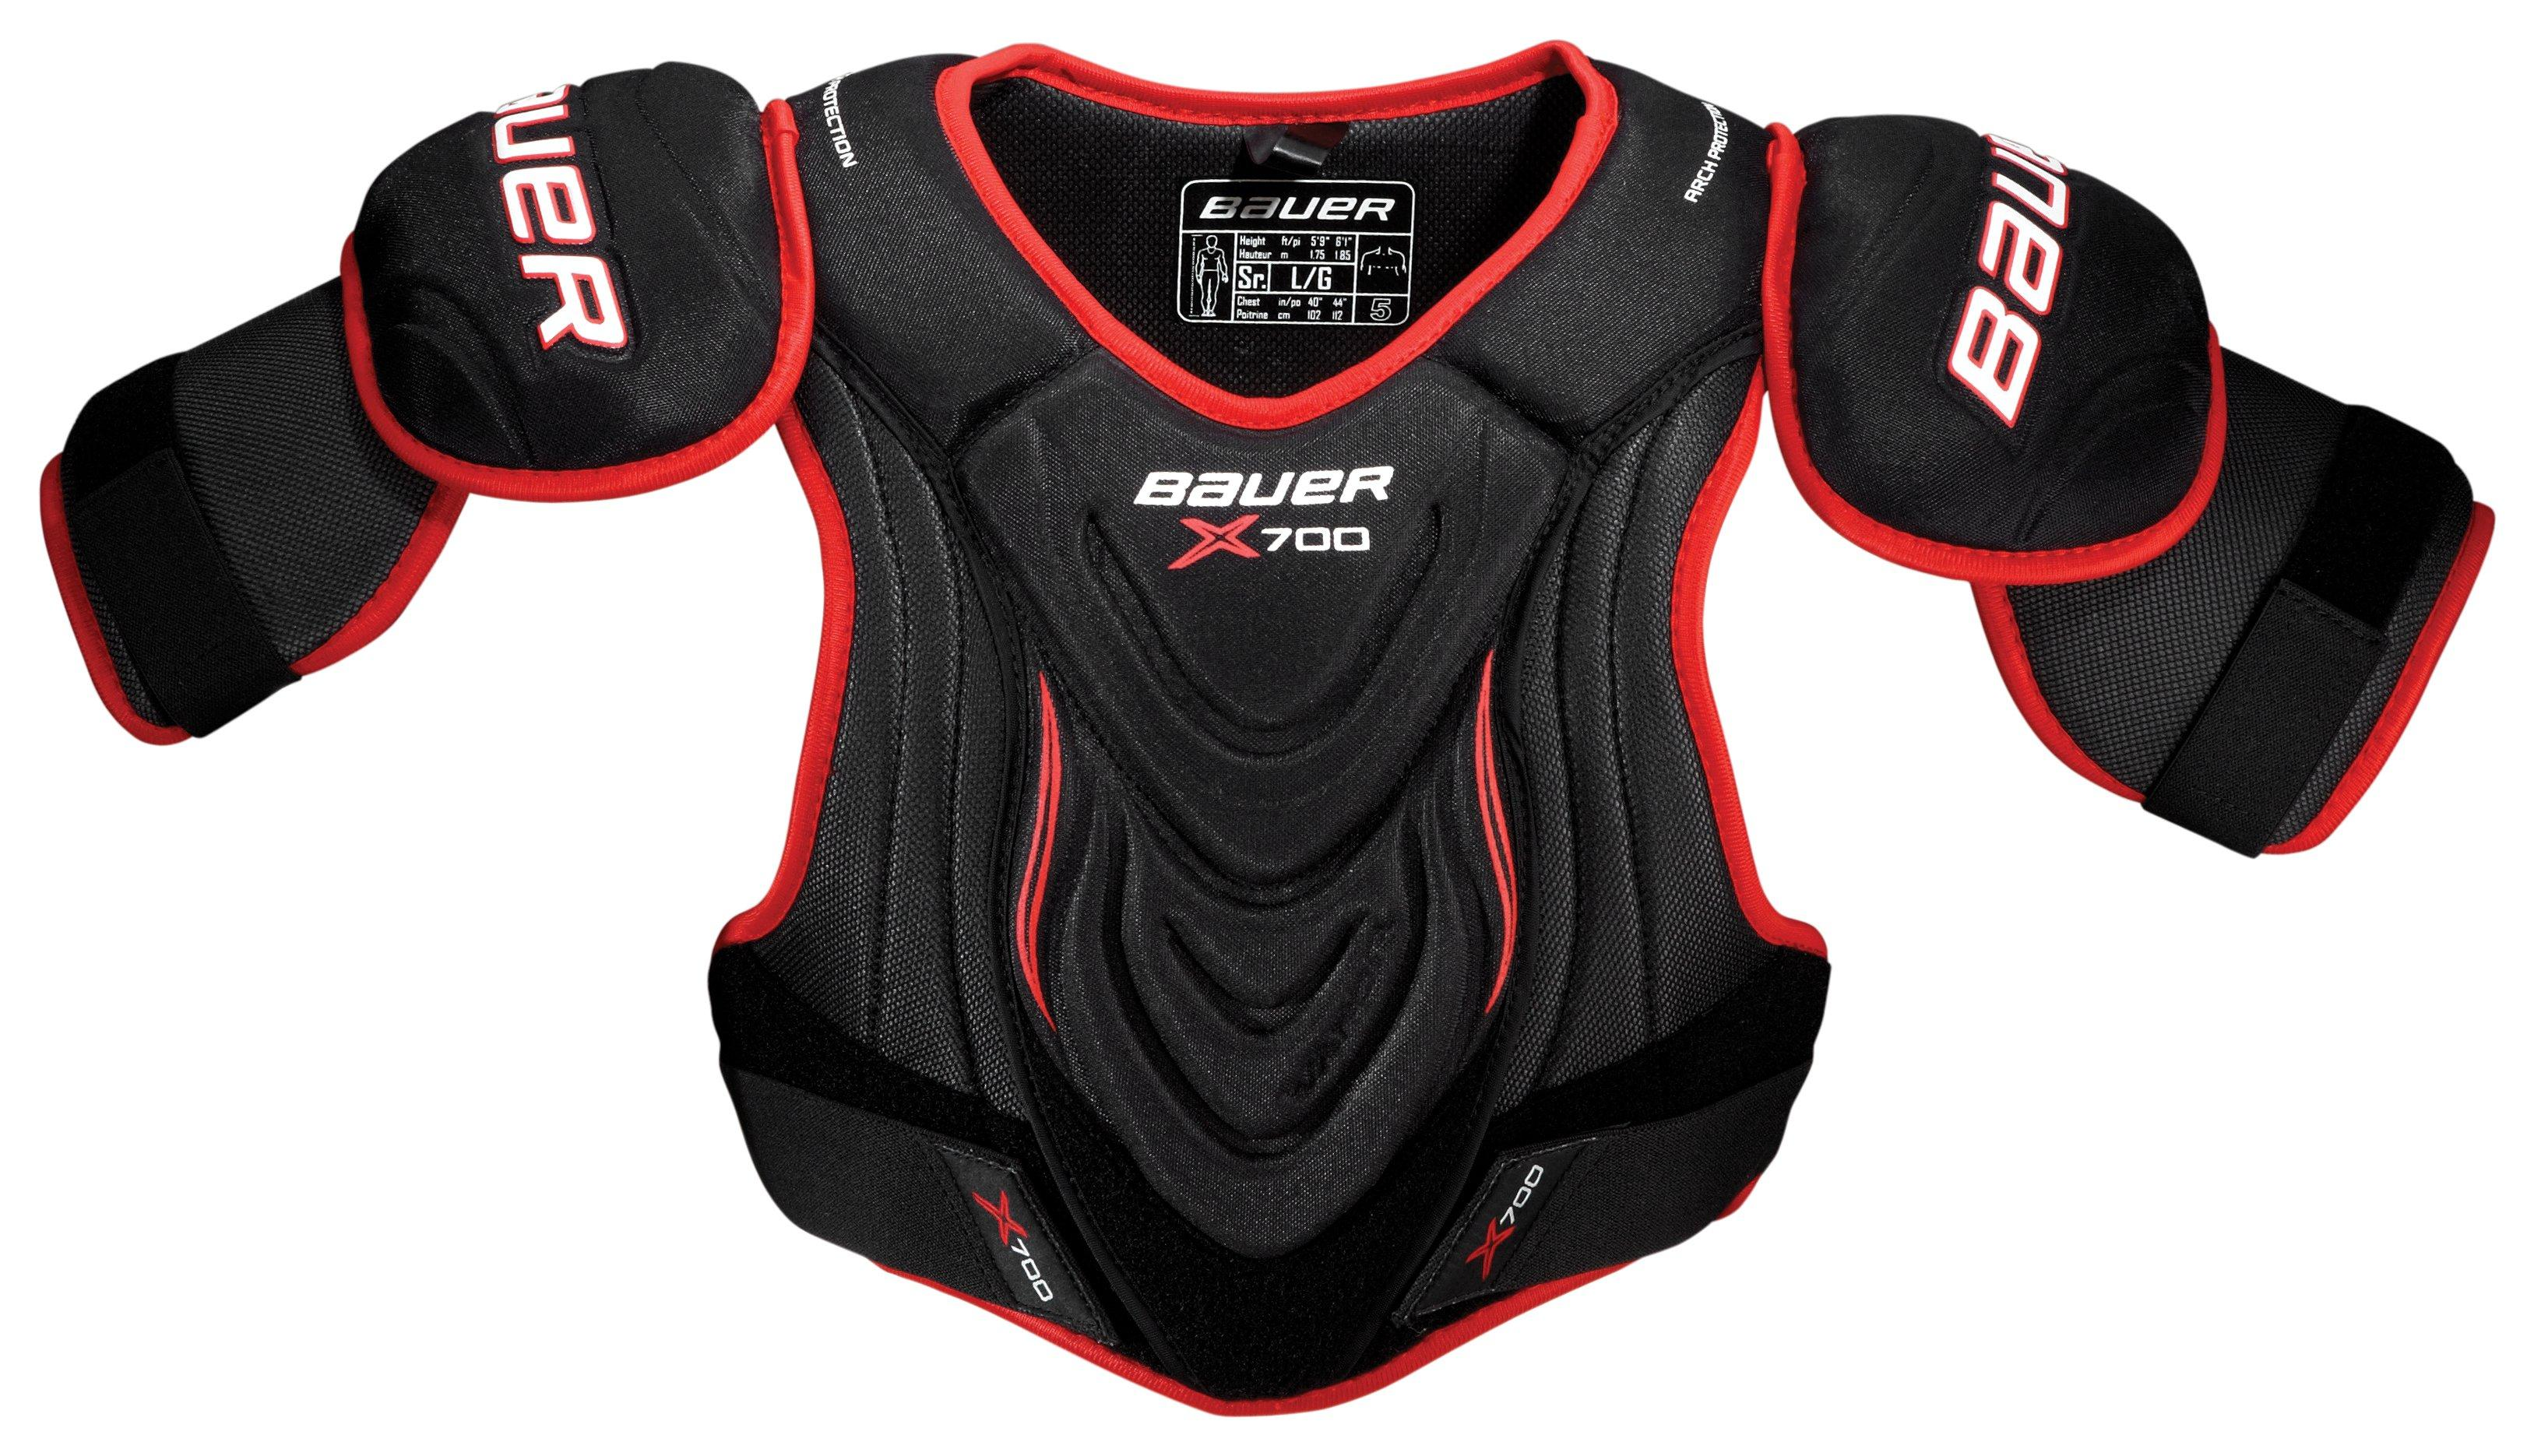 Vapor X700 Shoulder Pad Senior S16,,Размер M